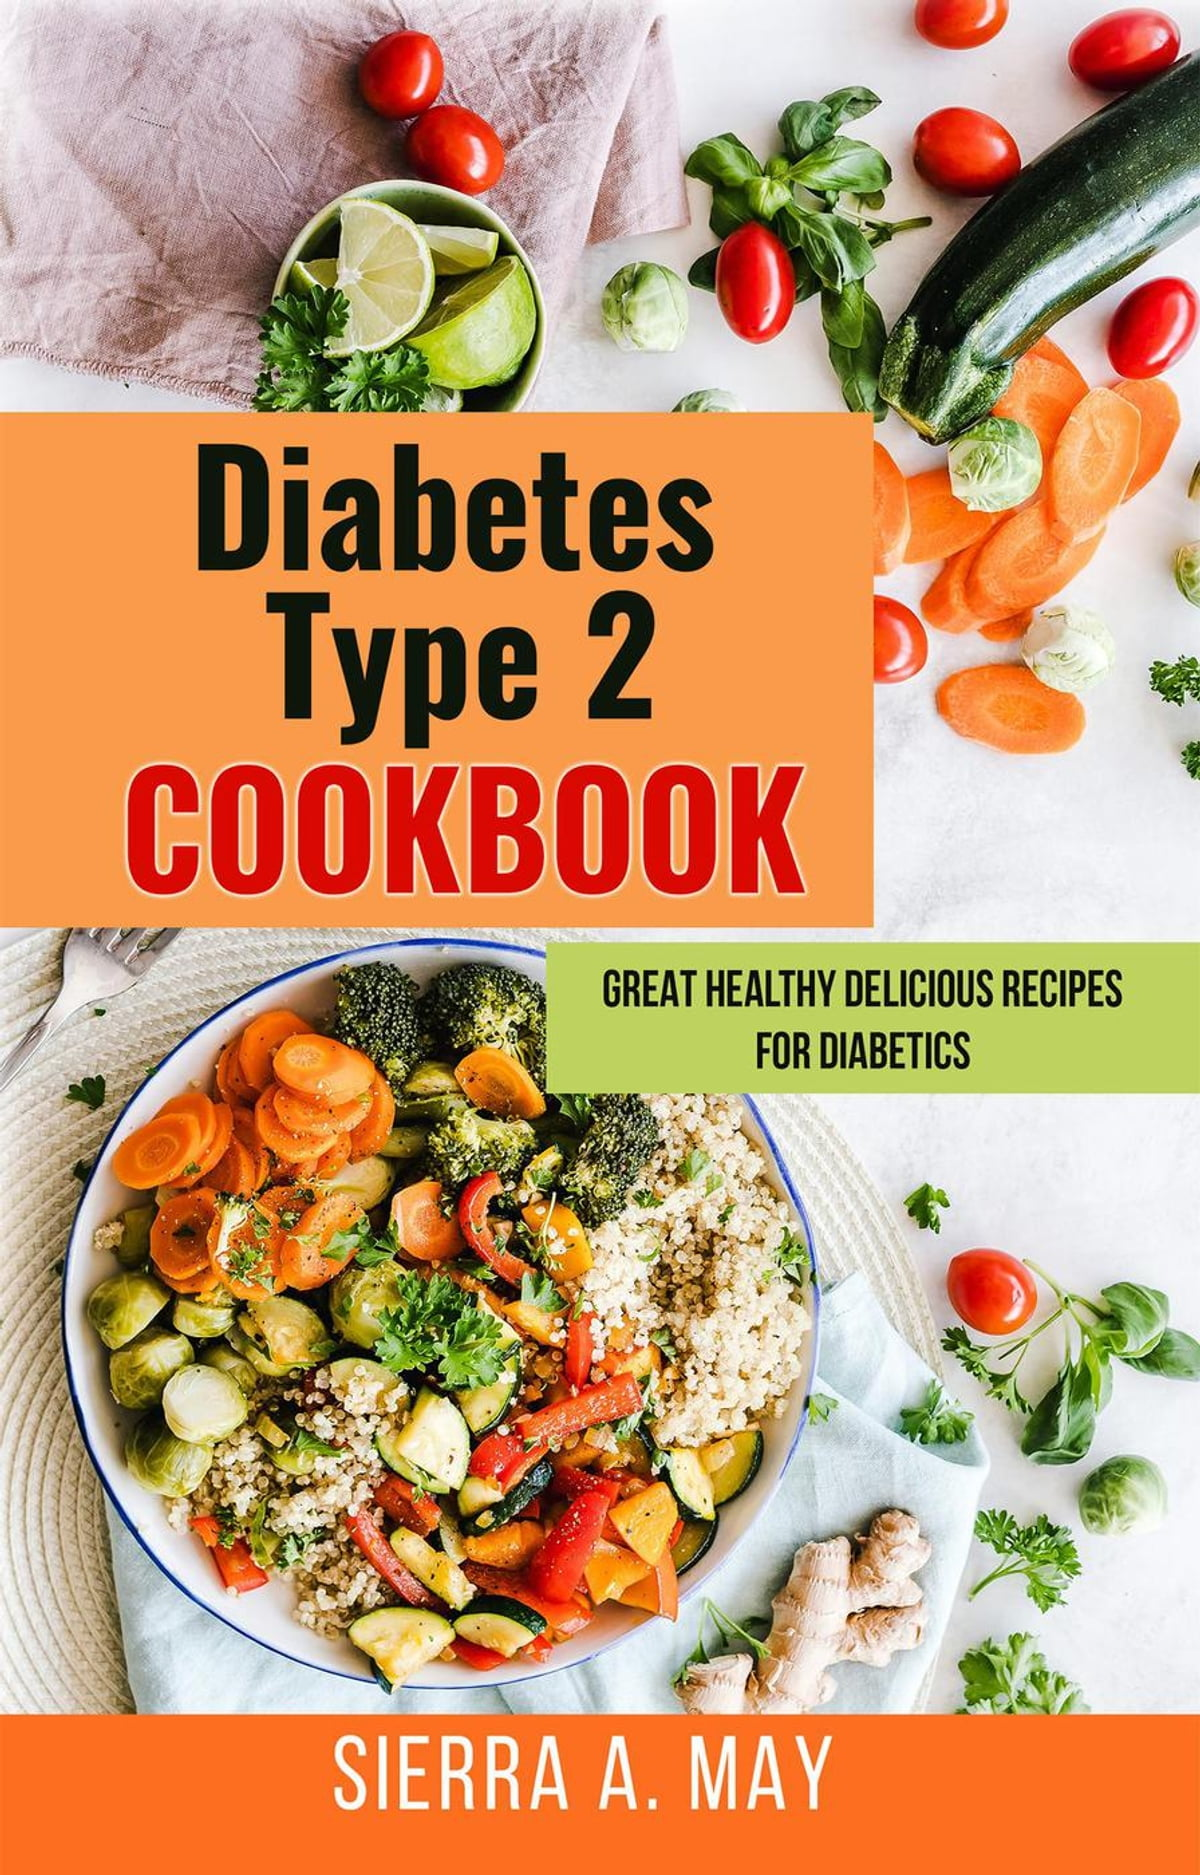 Diabetes Type 2 Cookbook Great Healthy Delicious Recipes For